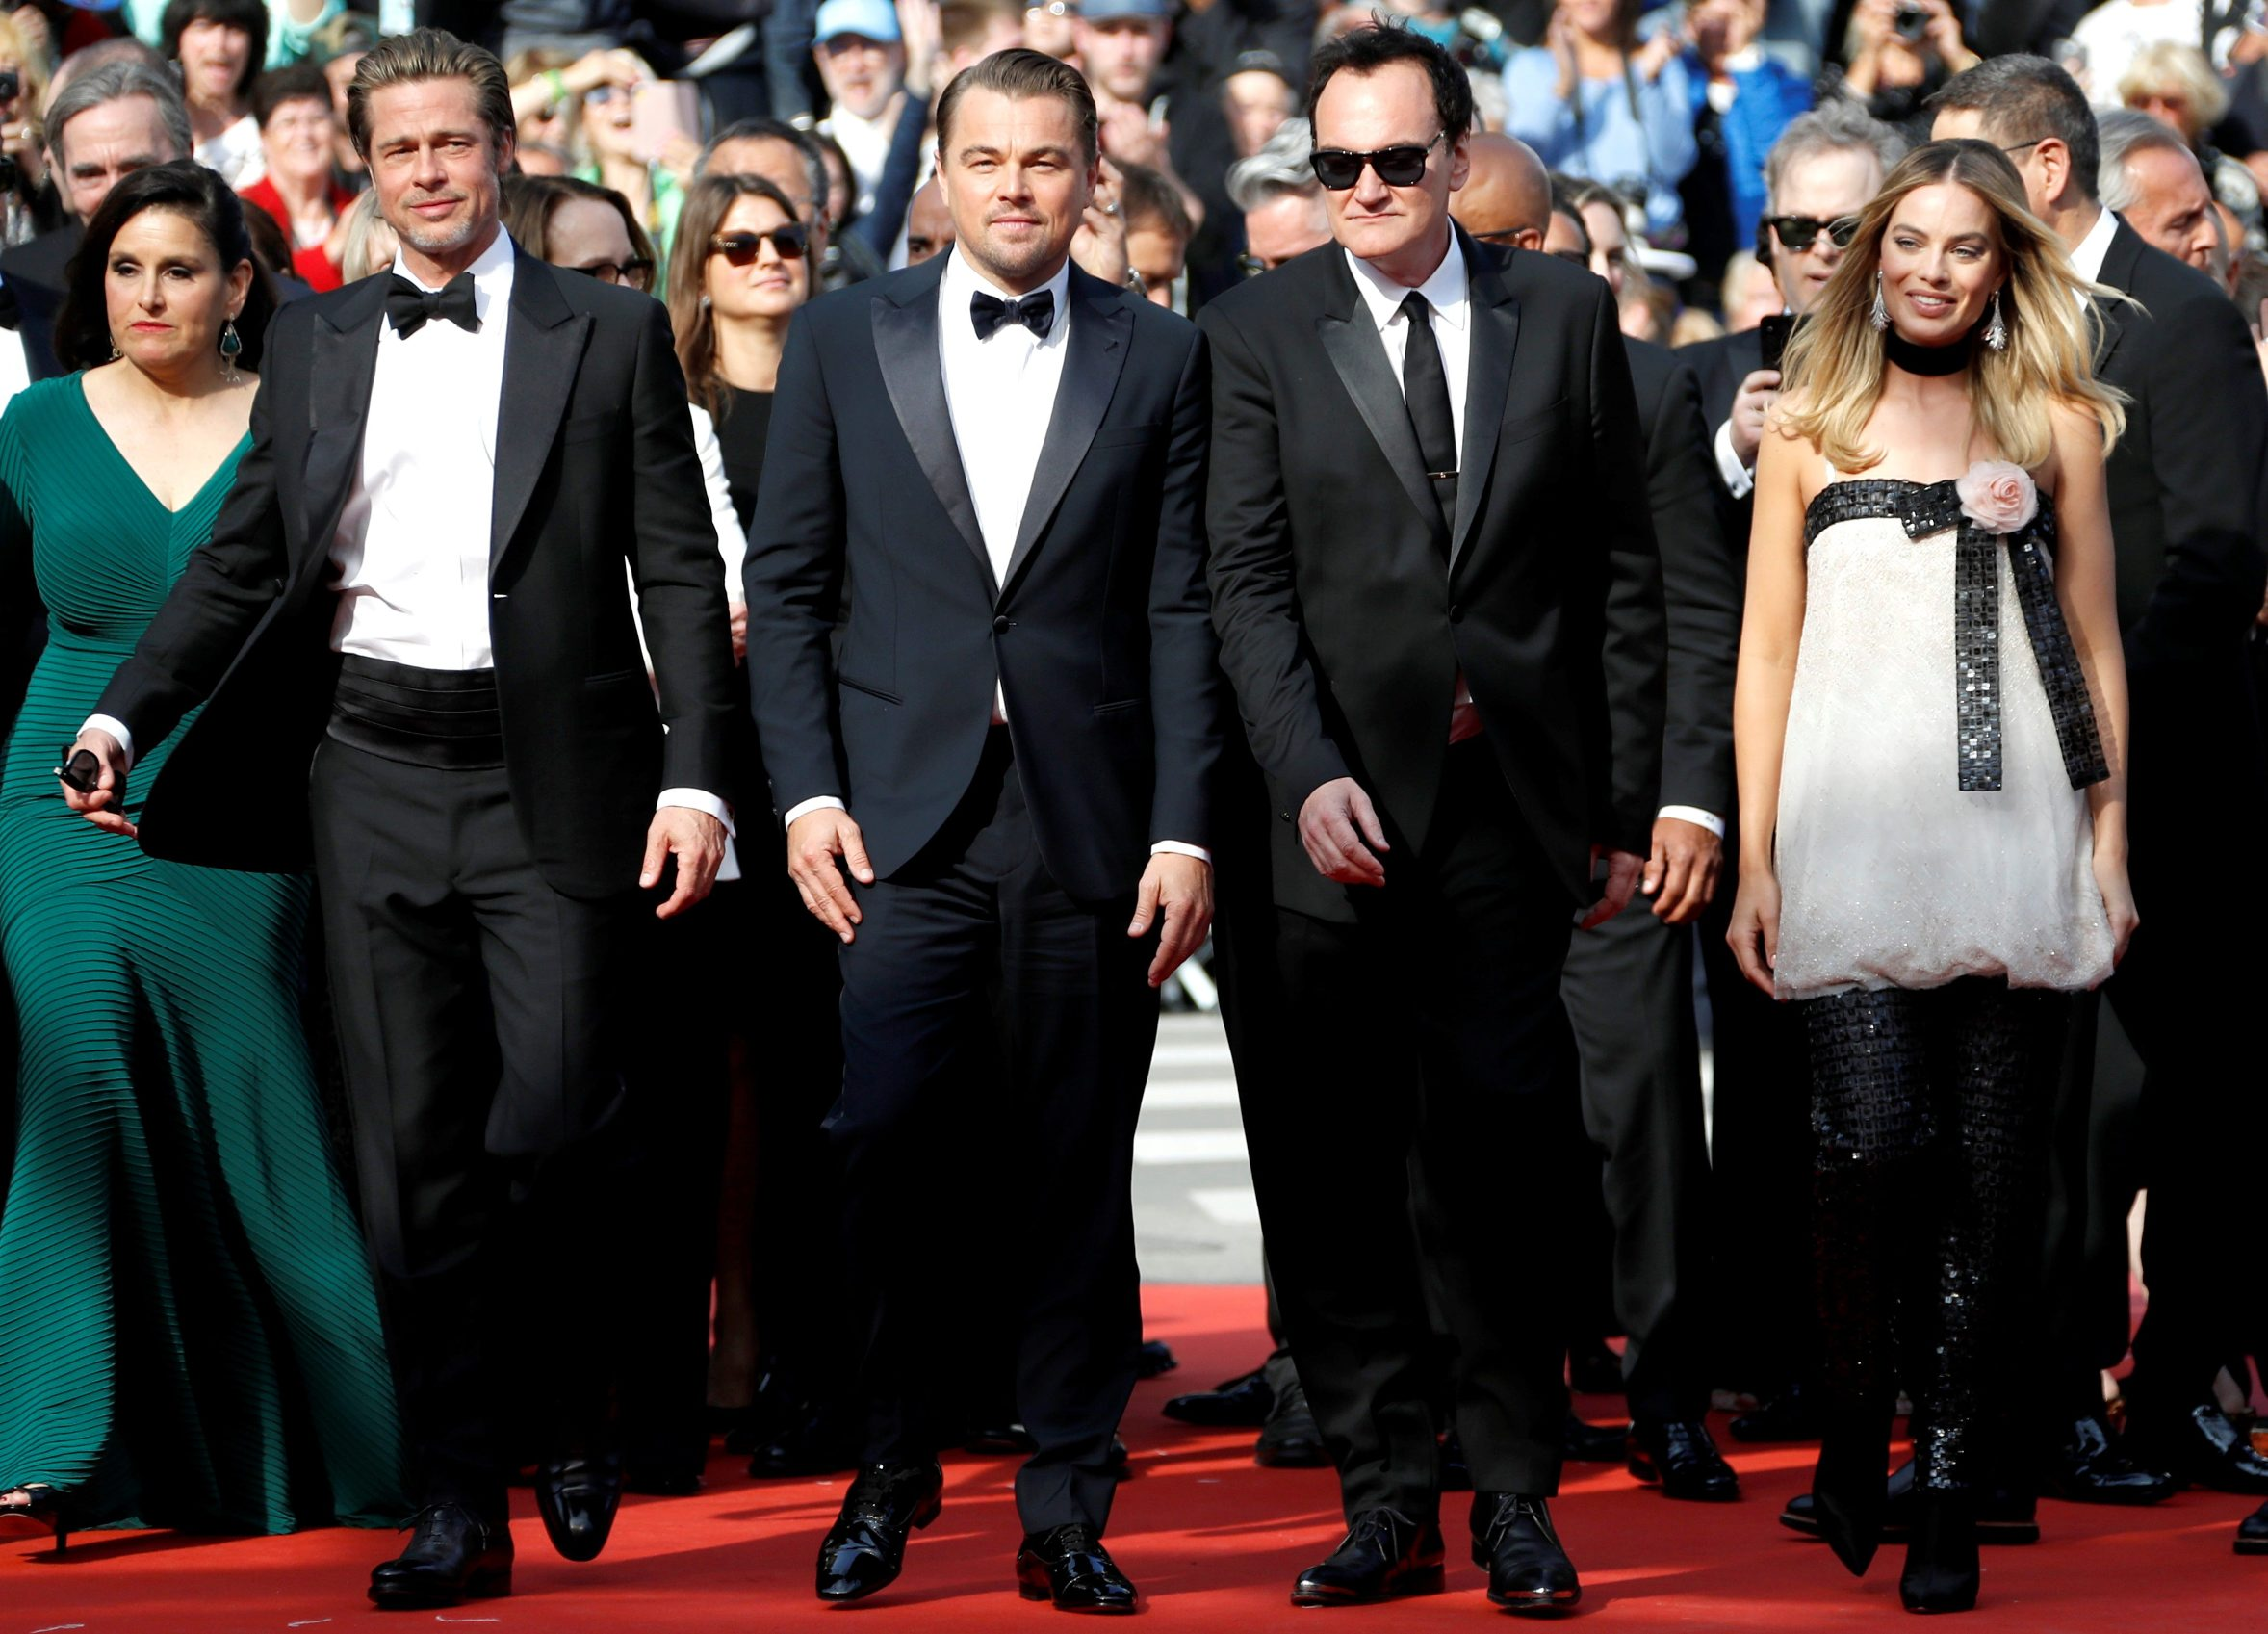 2019-05-21T181657Z_772260539_RC125373F620_RTRMADP_3_FILMFESTIVAL-CANNES-ONCE-UPON-A-TIME-IN-HOLLYWOOD